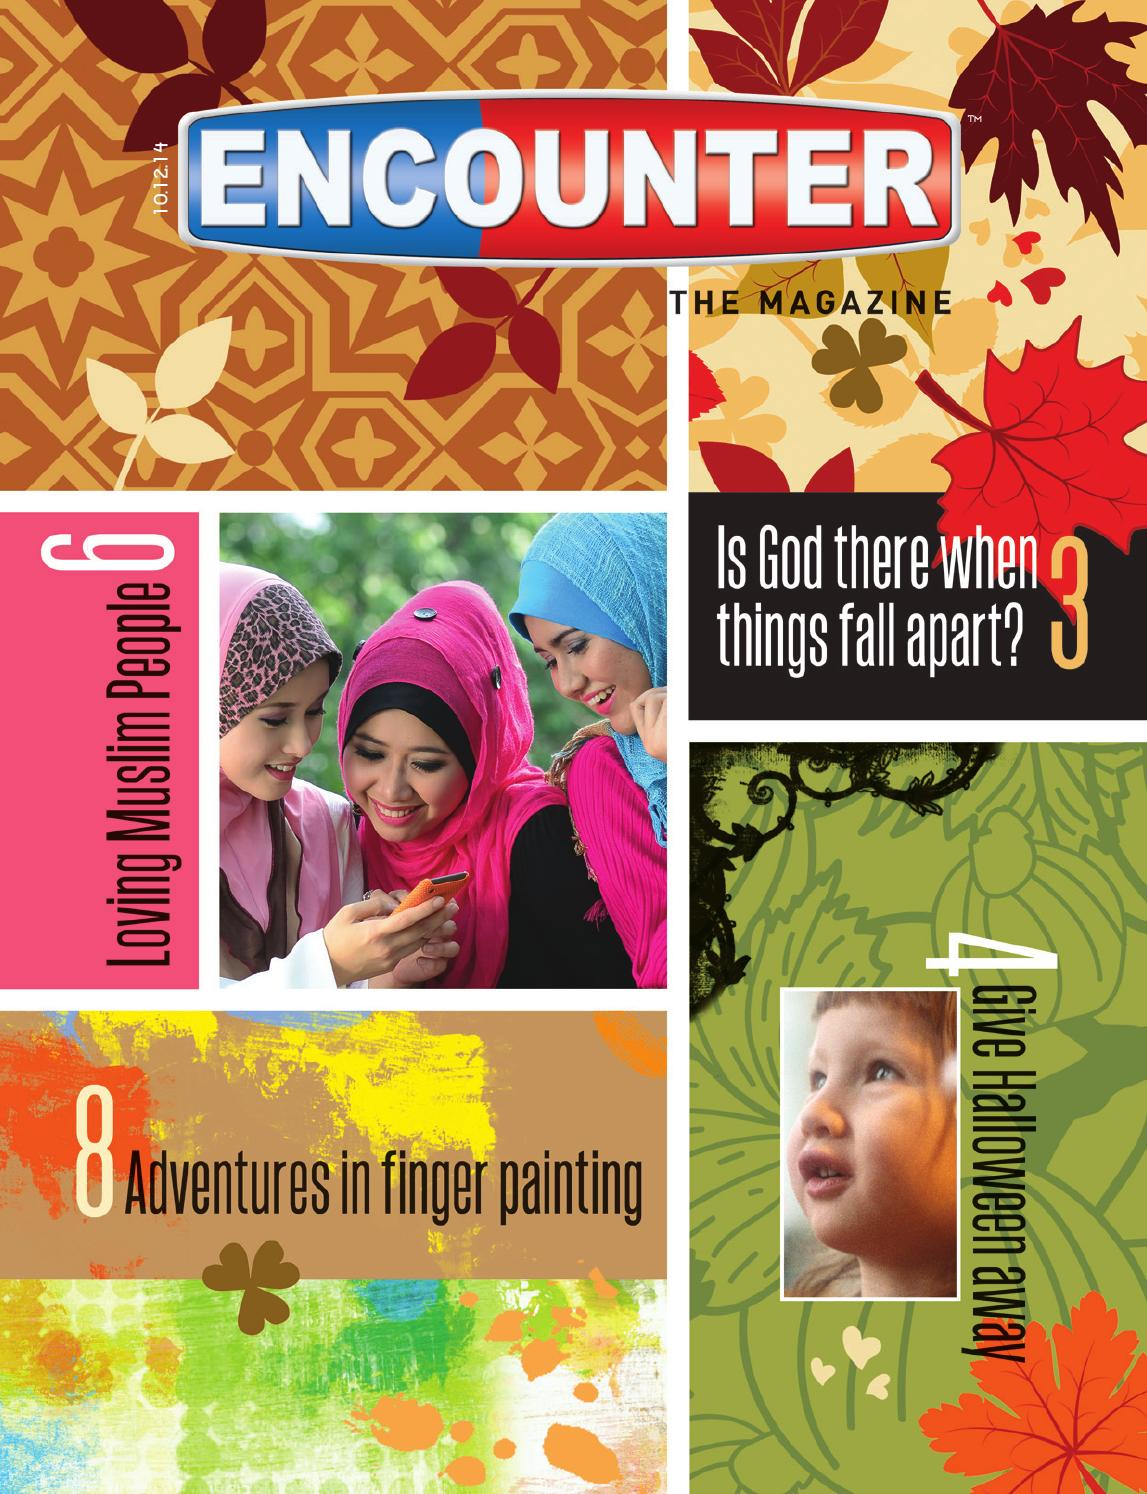 service encounter journal Read this essay on service encounter learned in class to share your personal service encounter experiences service journal entry form service encounter.